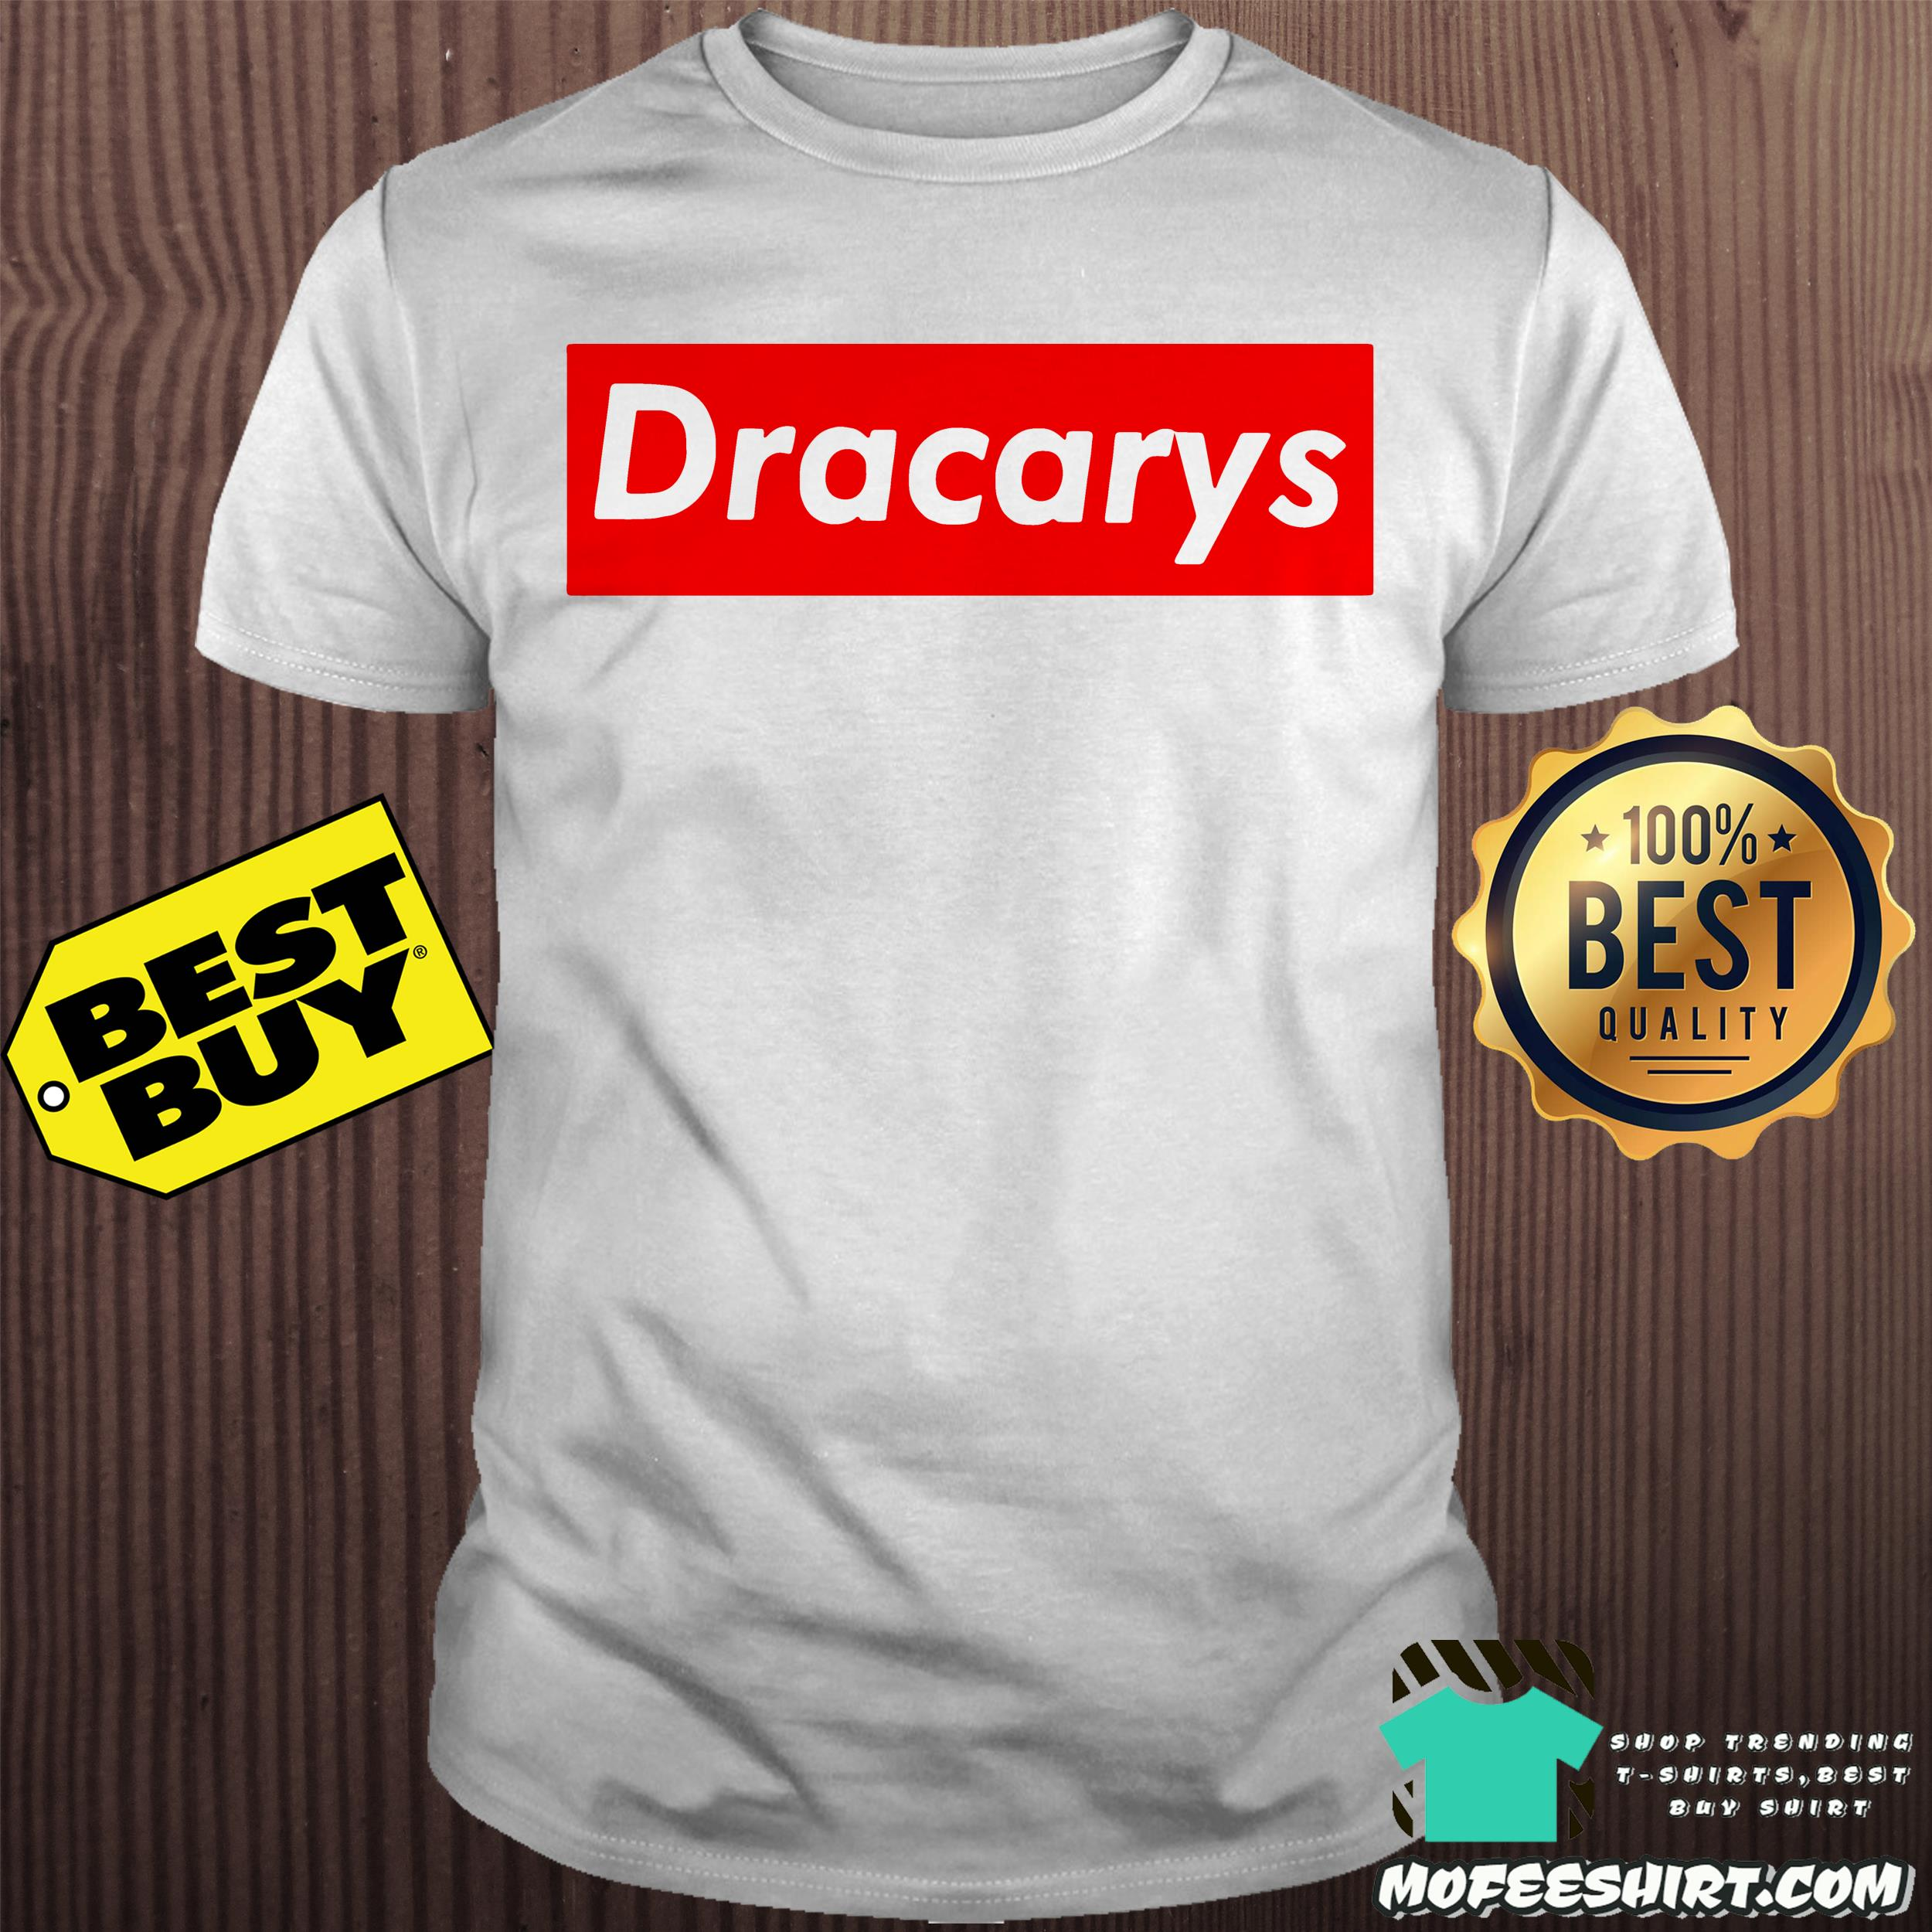 Dracarys Game of Thrones shirt